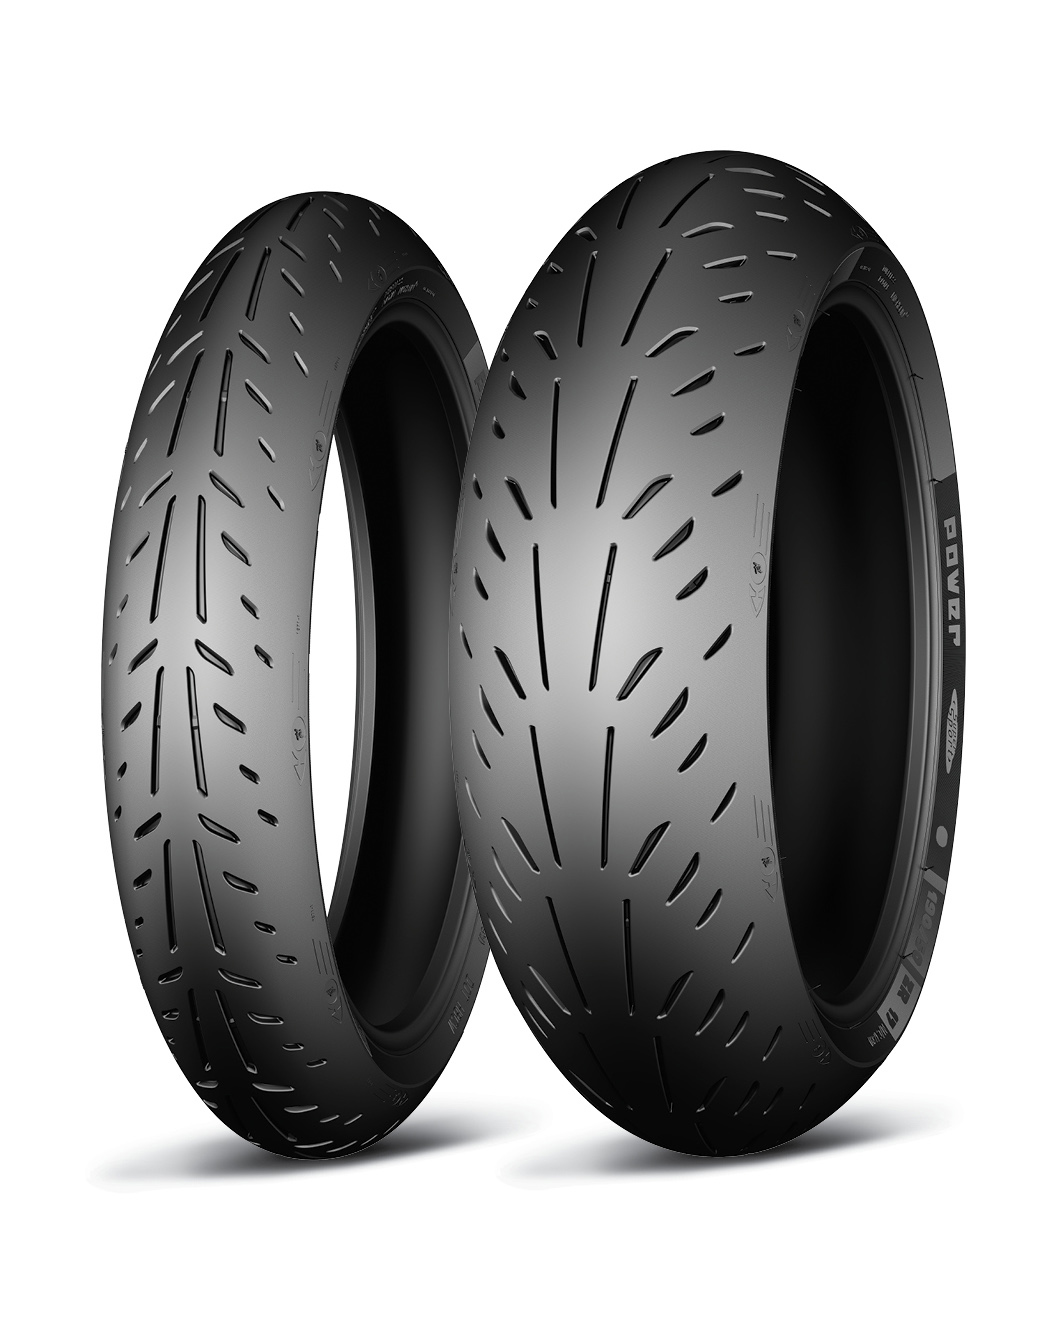 Моторезина Michelin Power Supersport 180/55 R17 73W купить в Киеве, цена — ShinaDiski